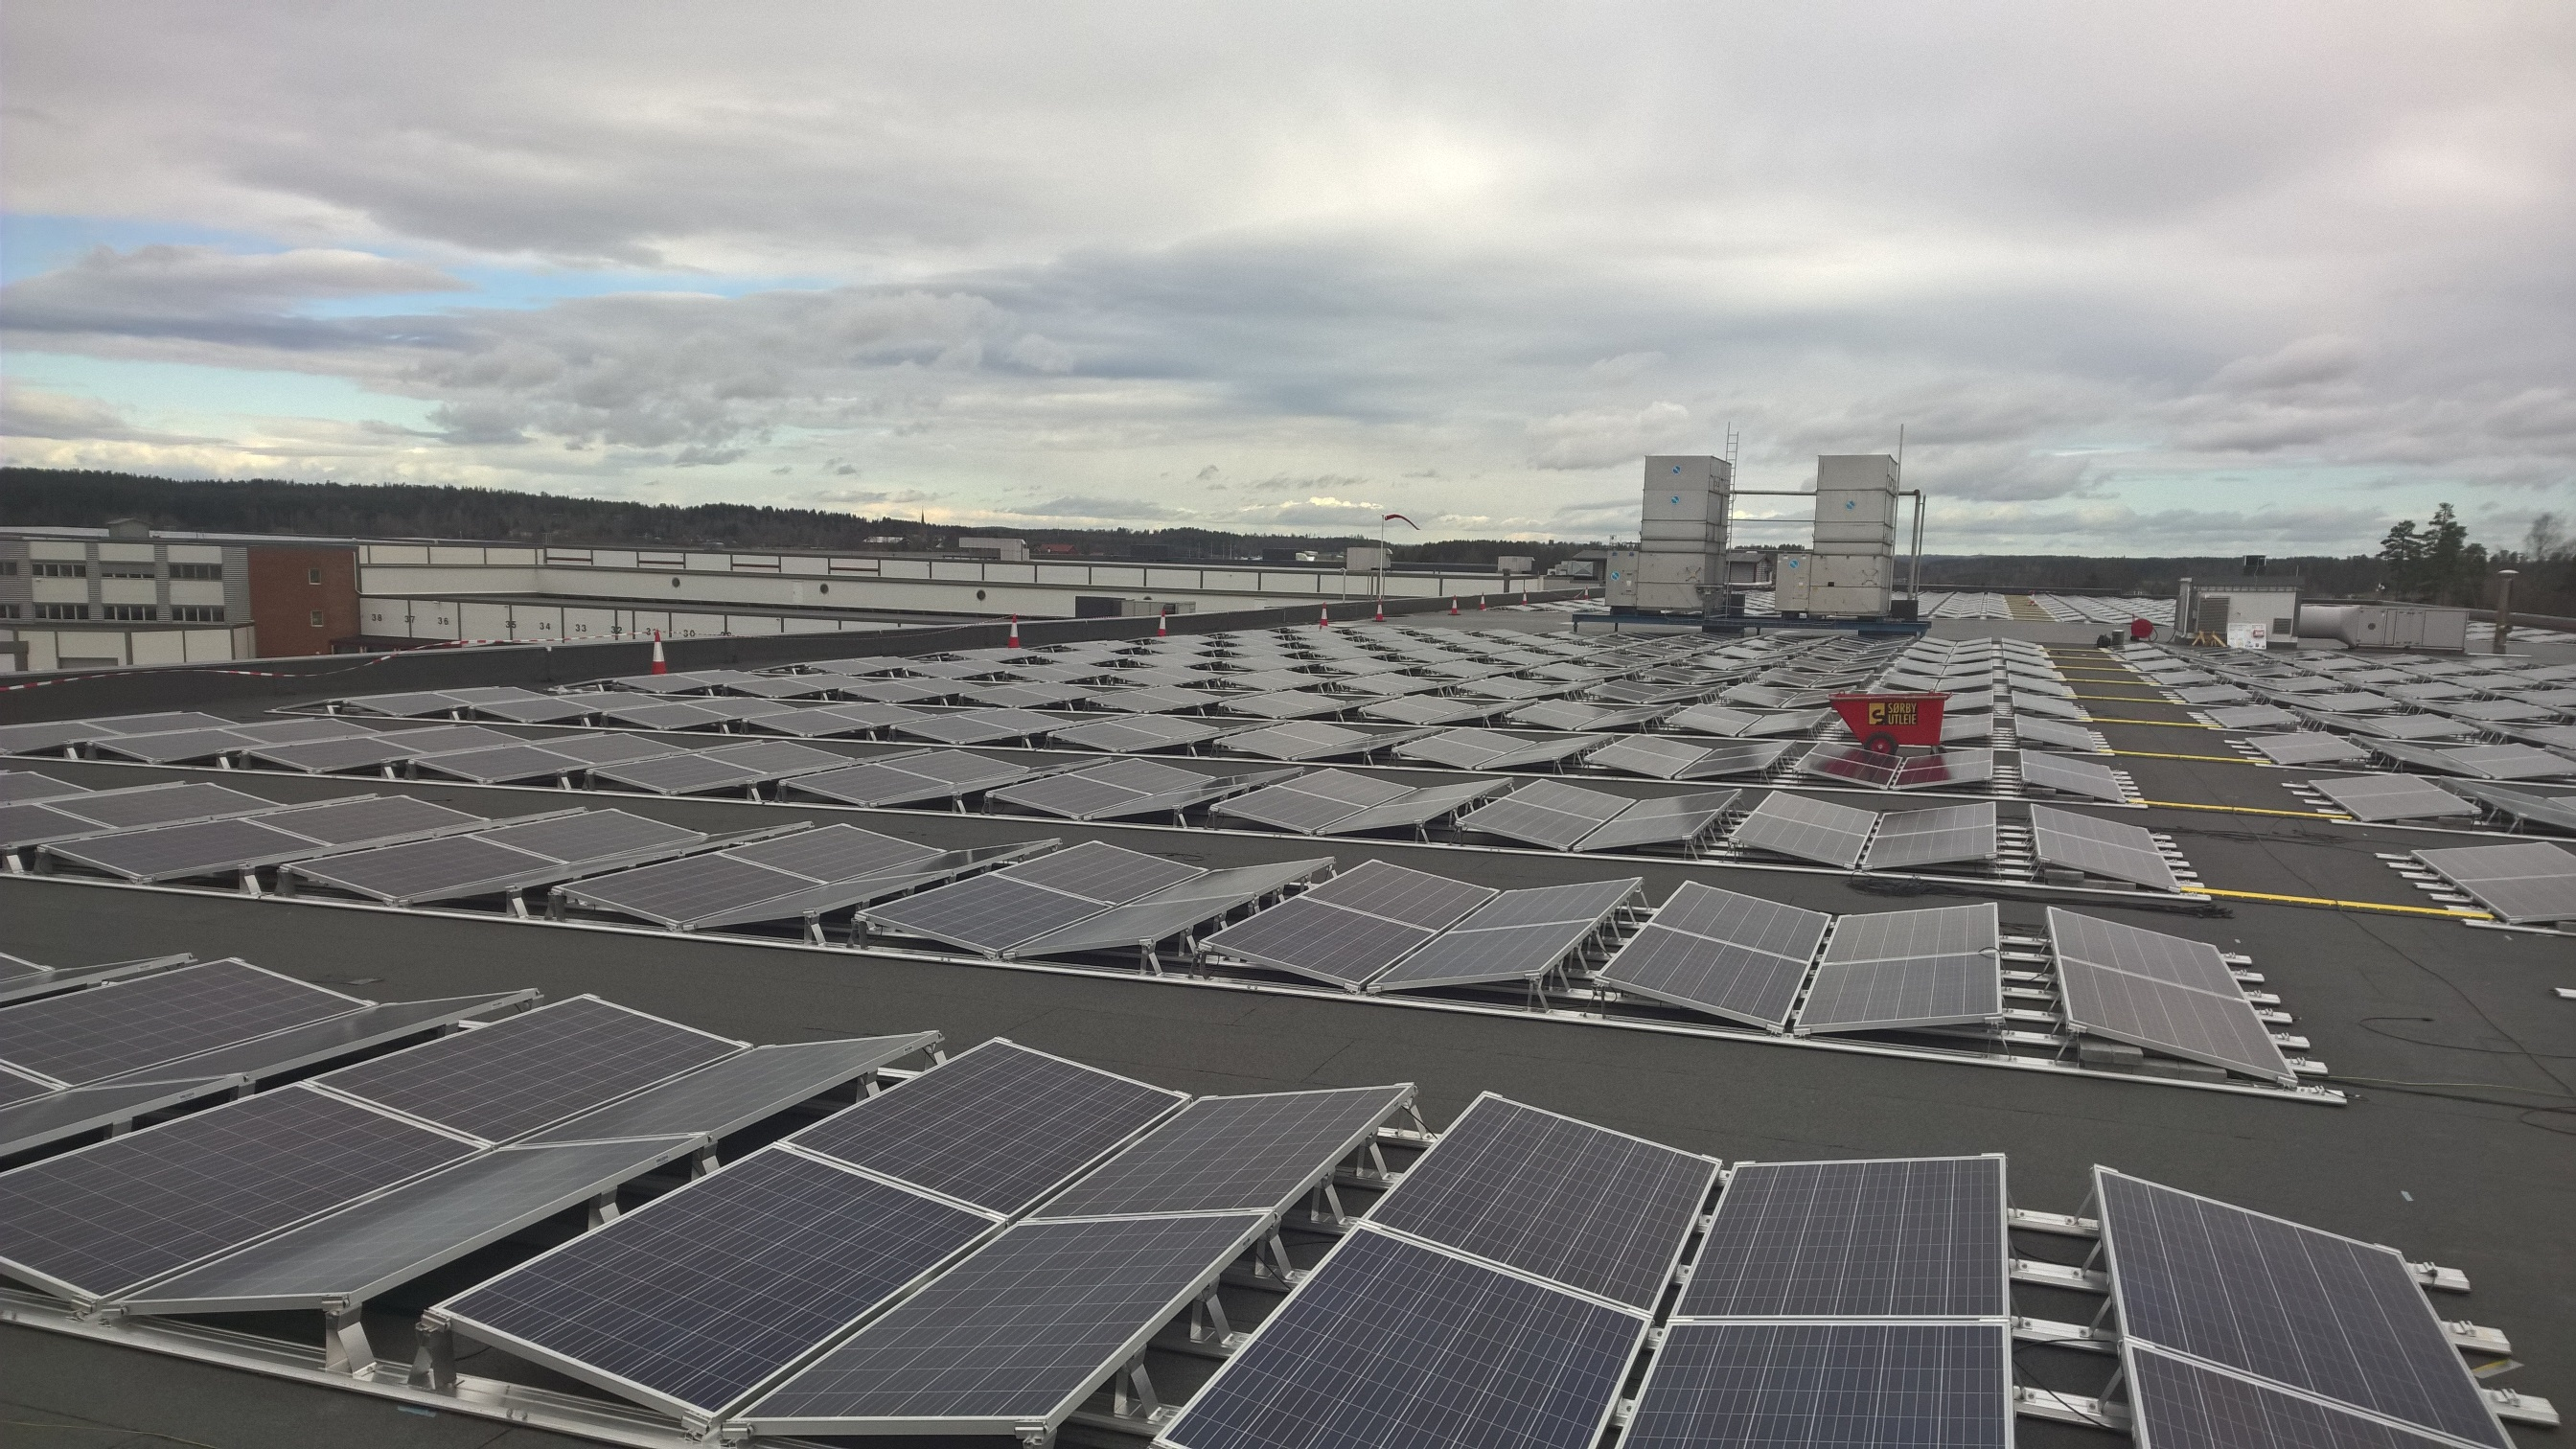 Food cooling system in Norway uses 1 MW PV plant | Sun